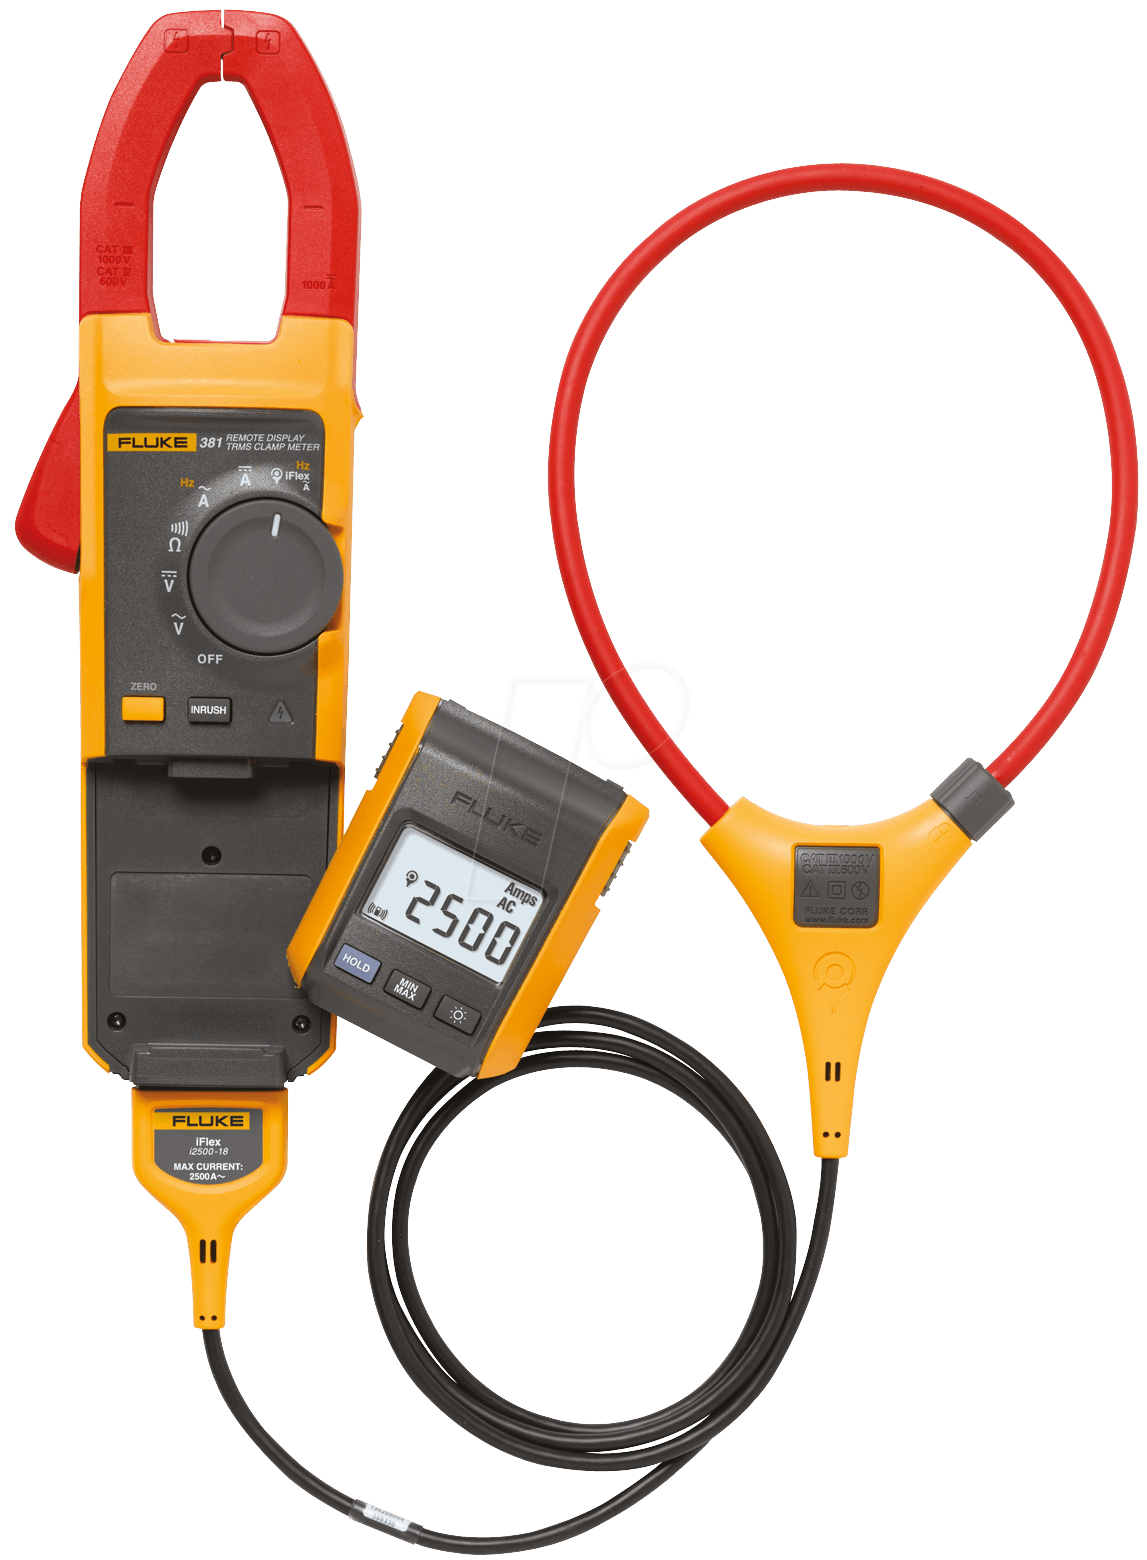 Fluke Clamp Meter : Fluke trms clamp meter with removable display at